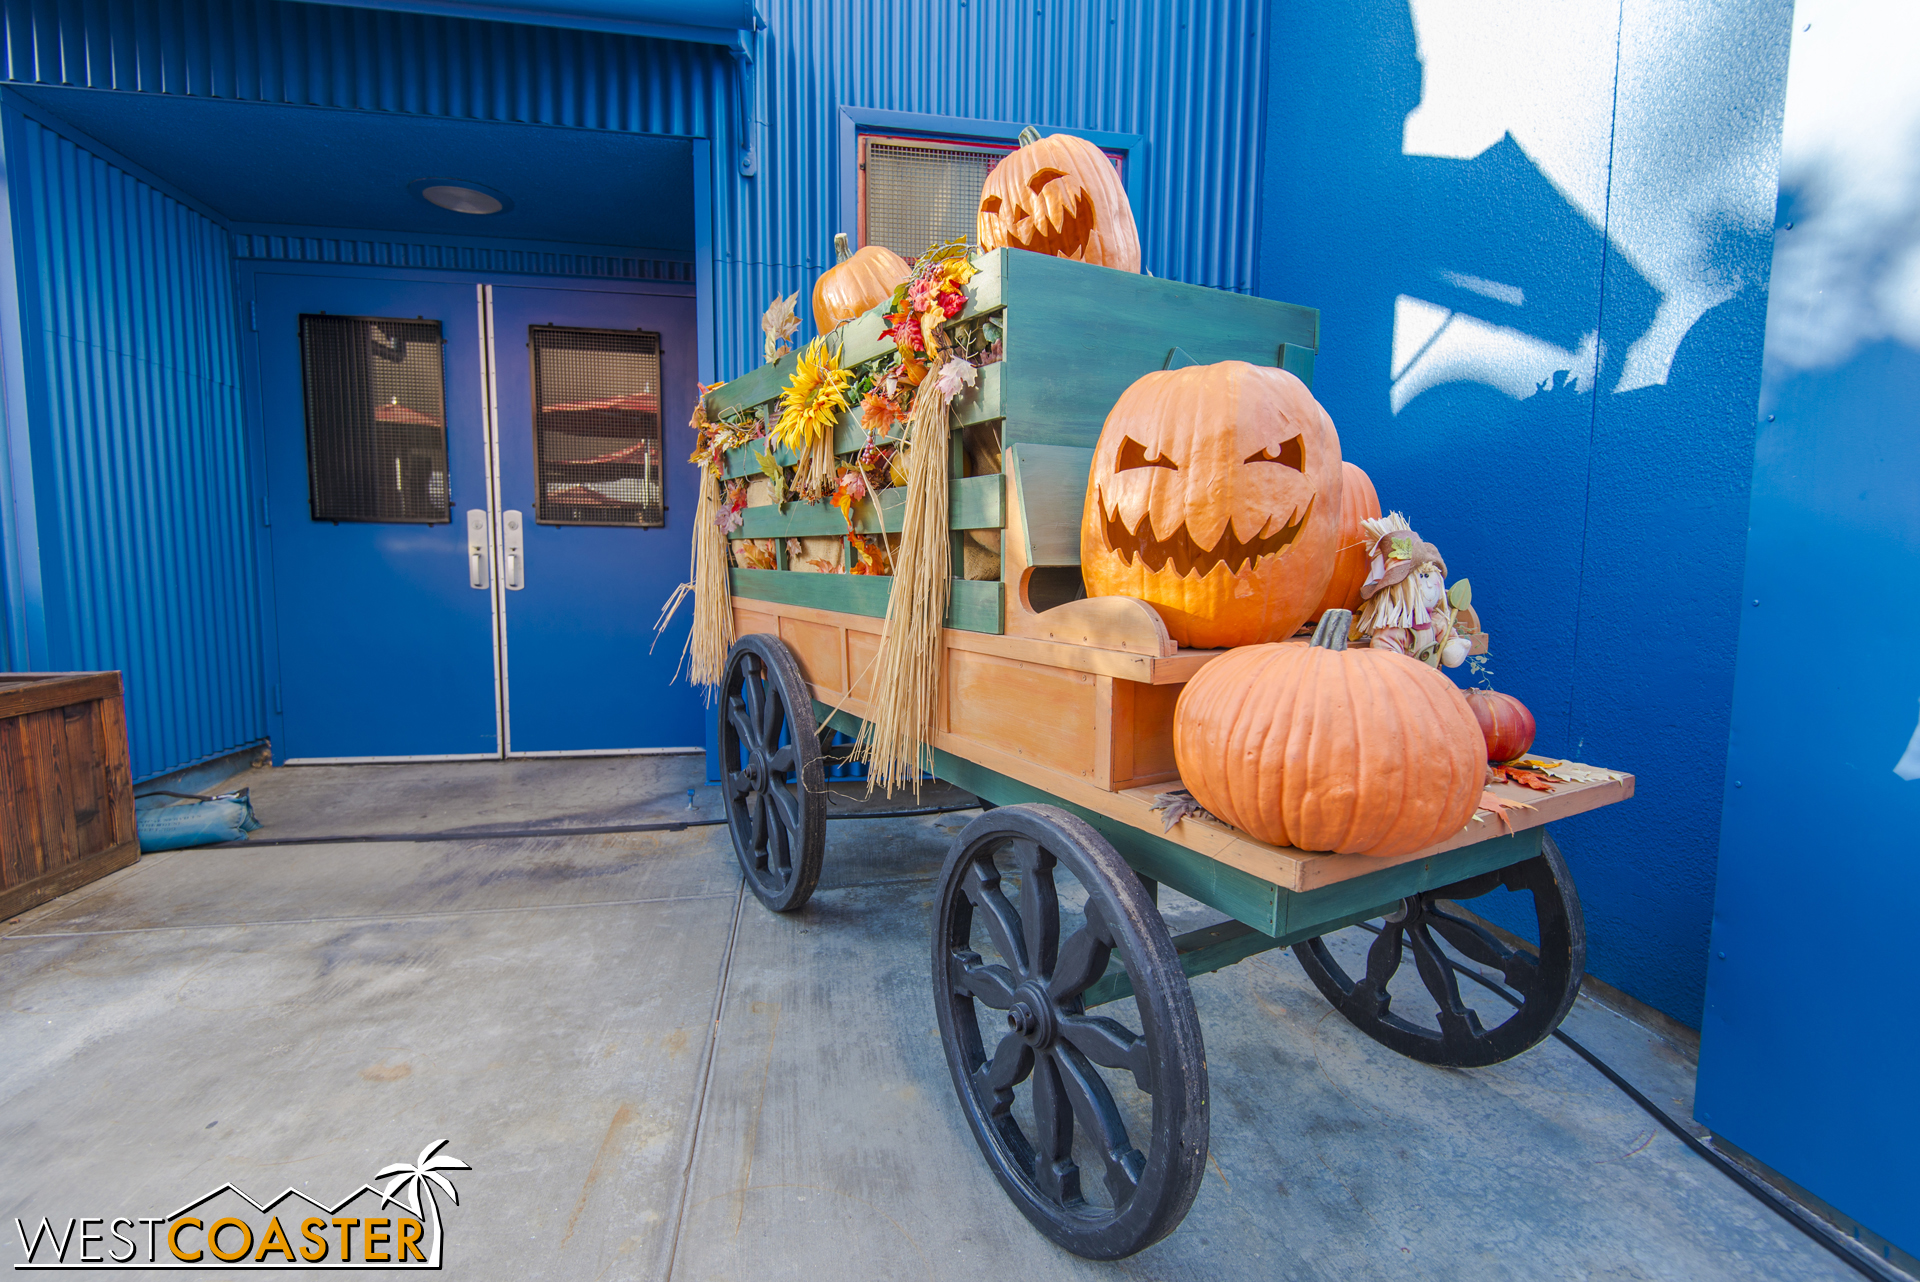 Looks like some of the Halloween props from Big Thunder Ranch got shipped over here.